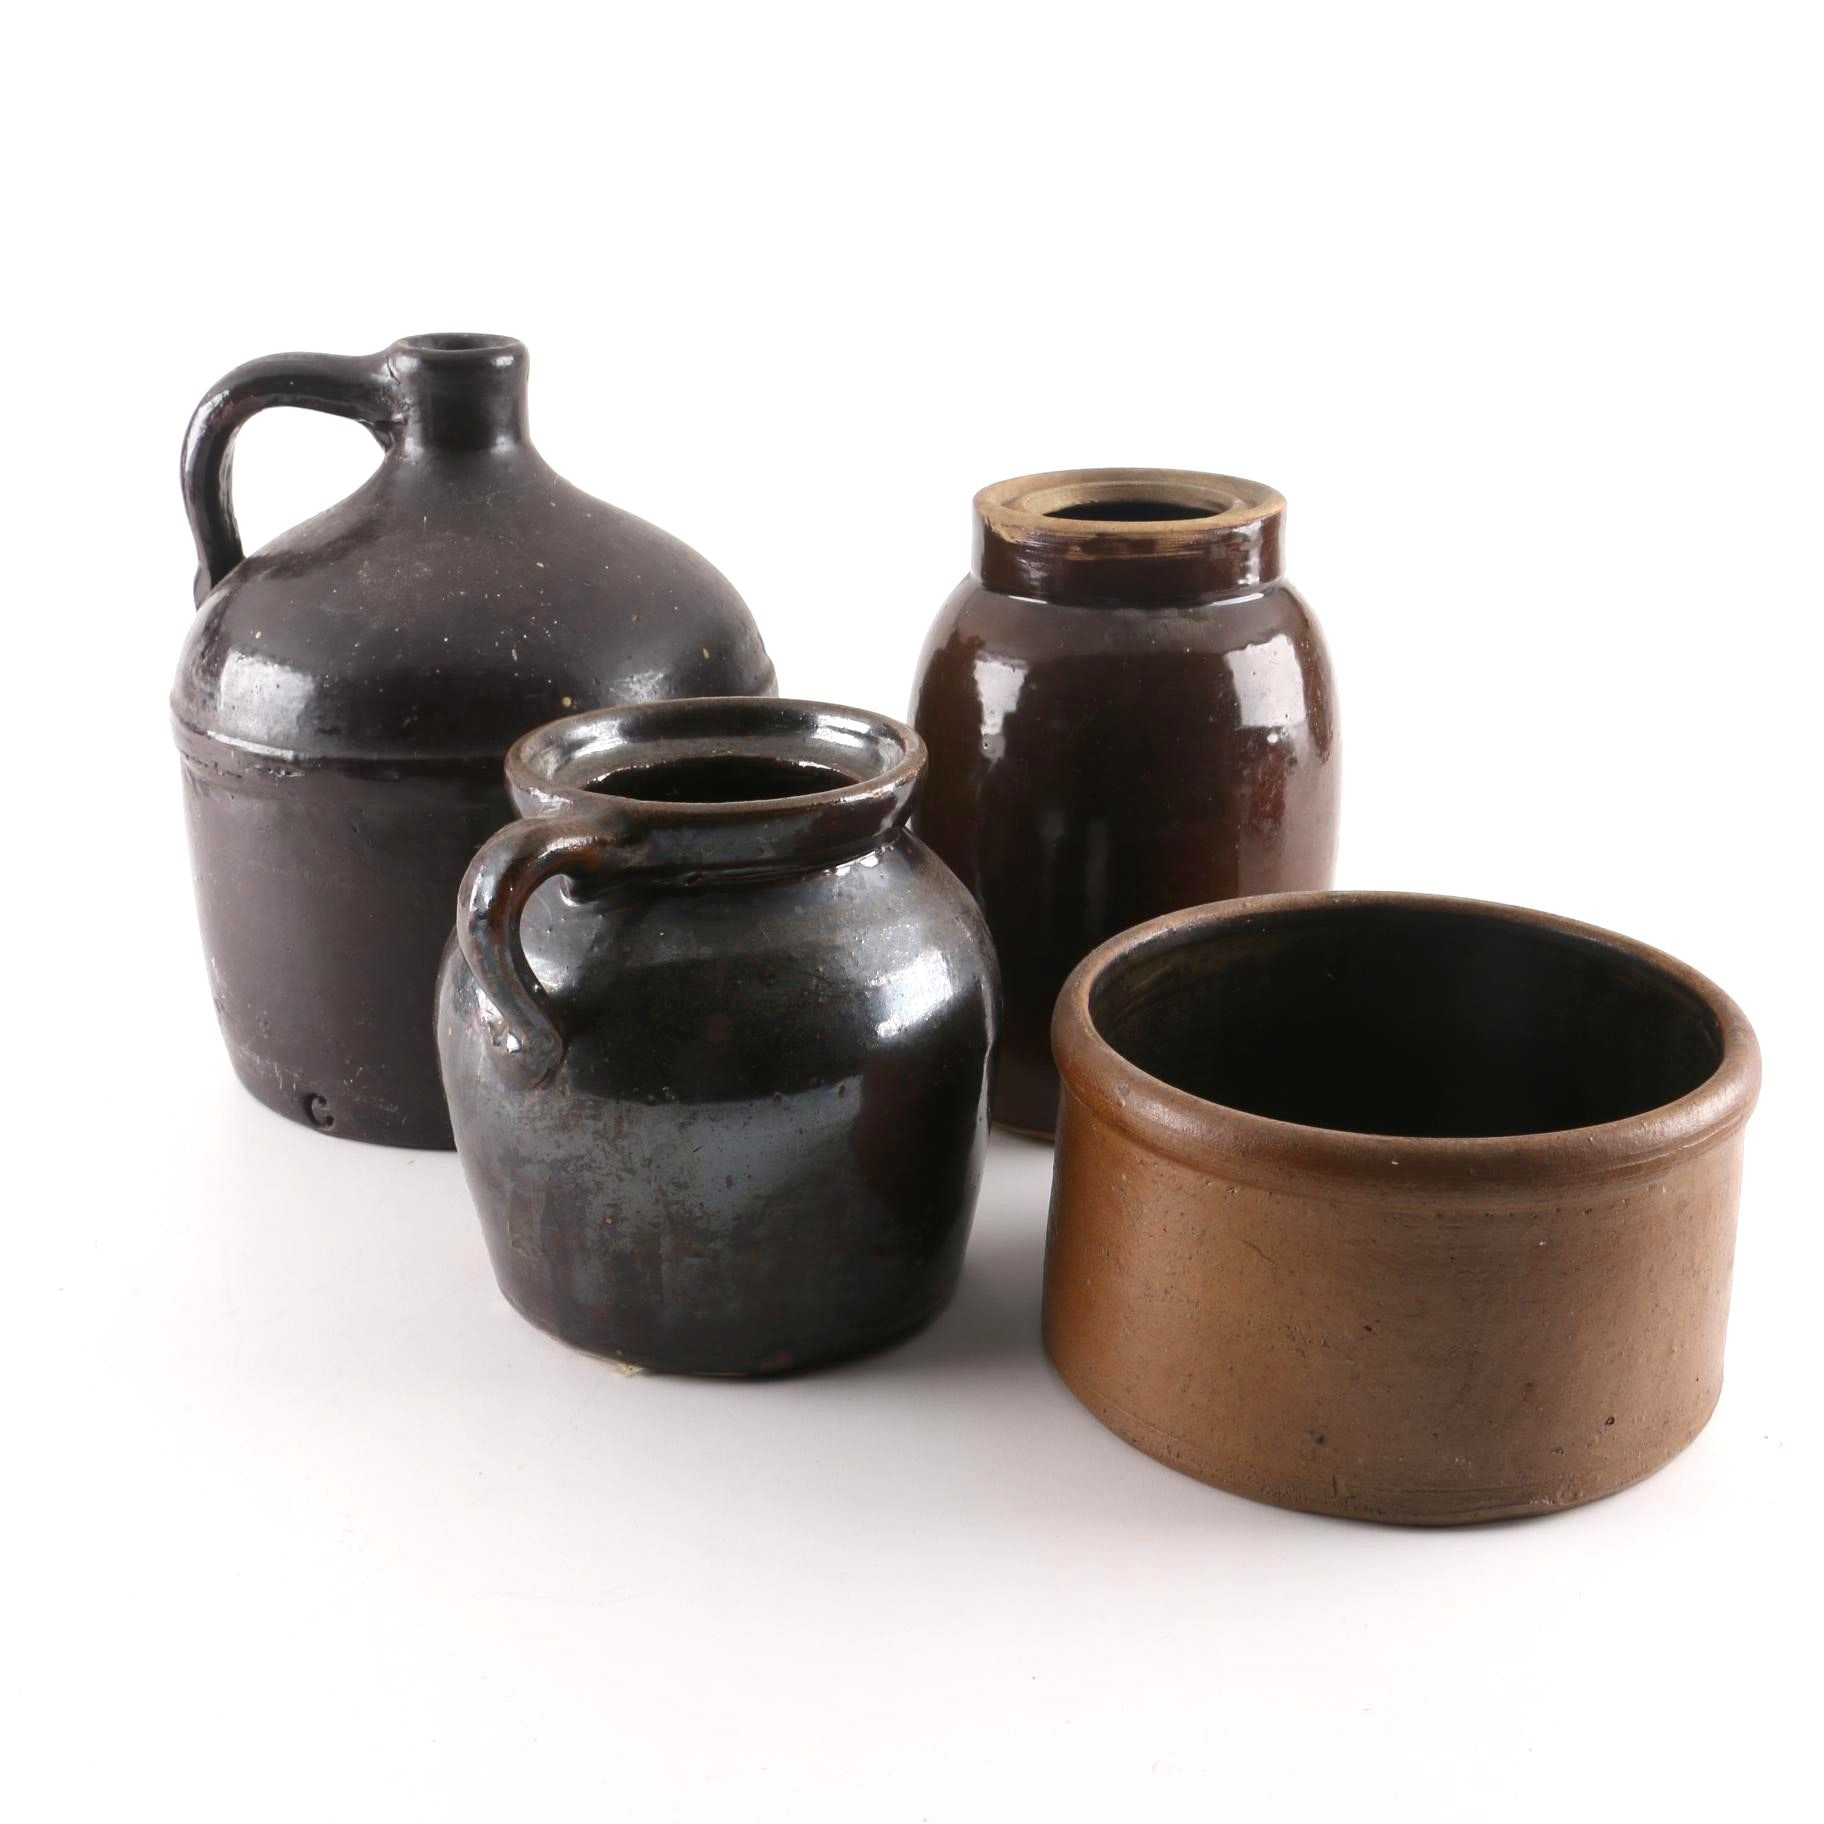 Collection of Vintage Stoneware Pottery